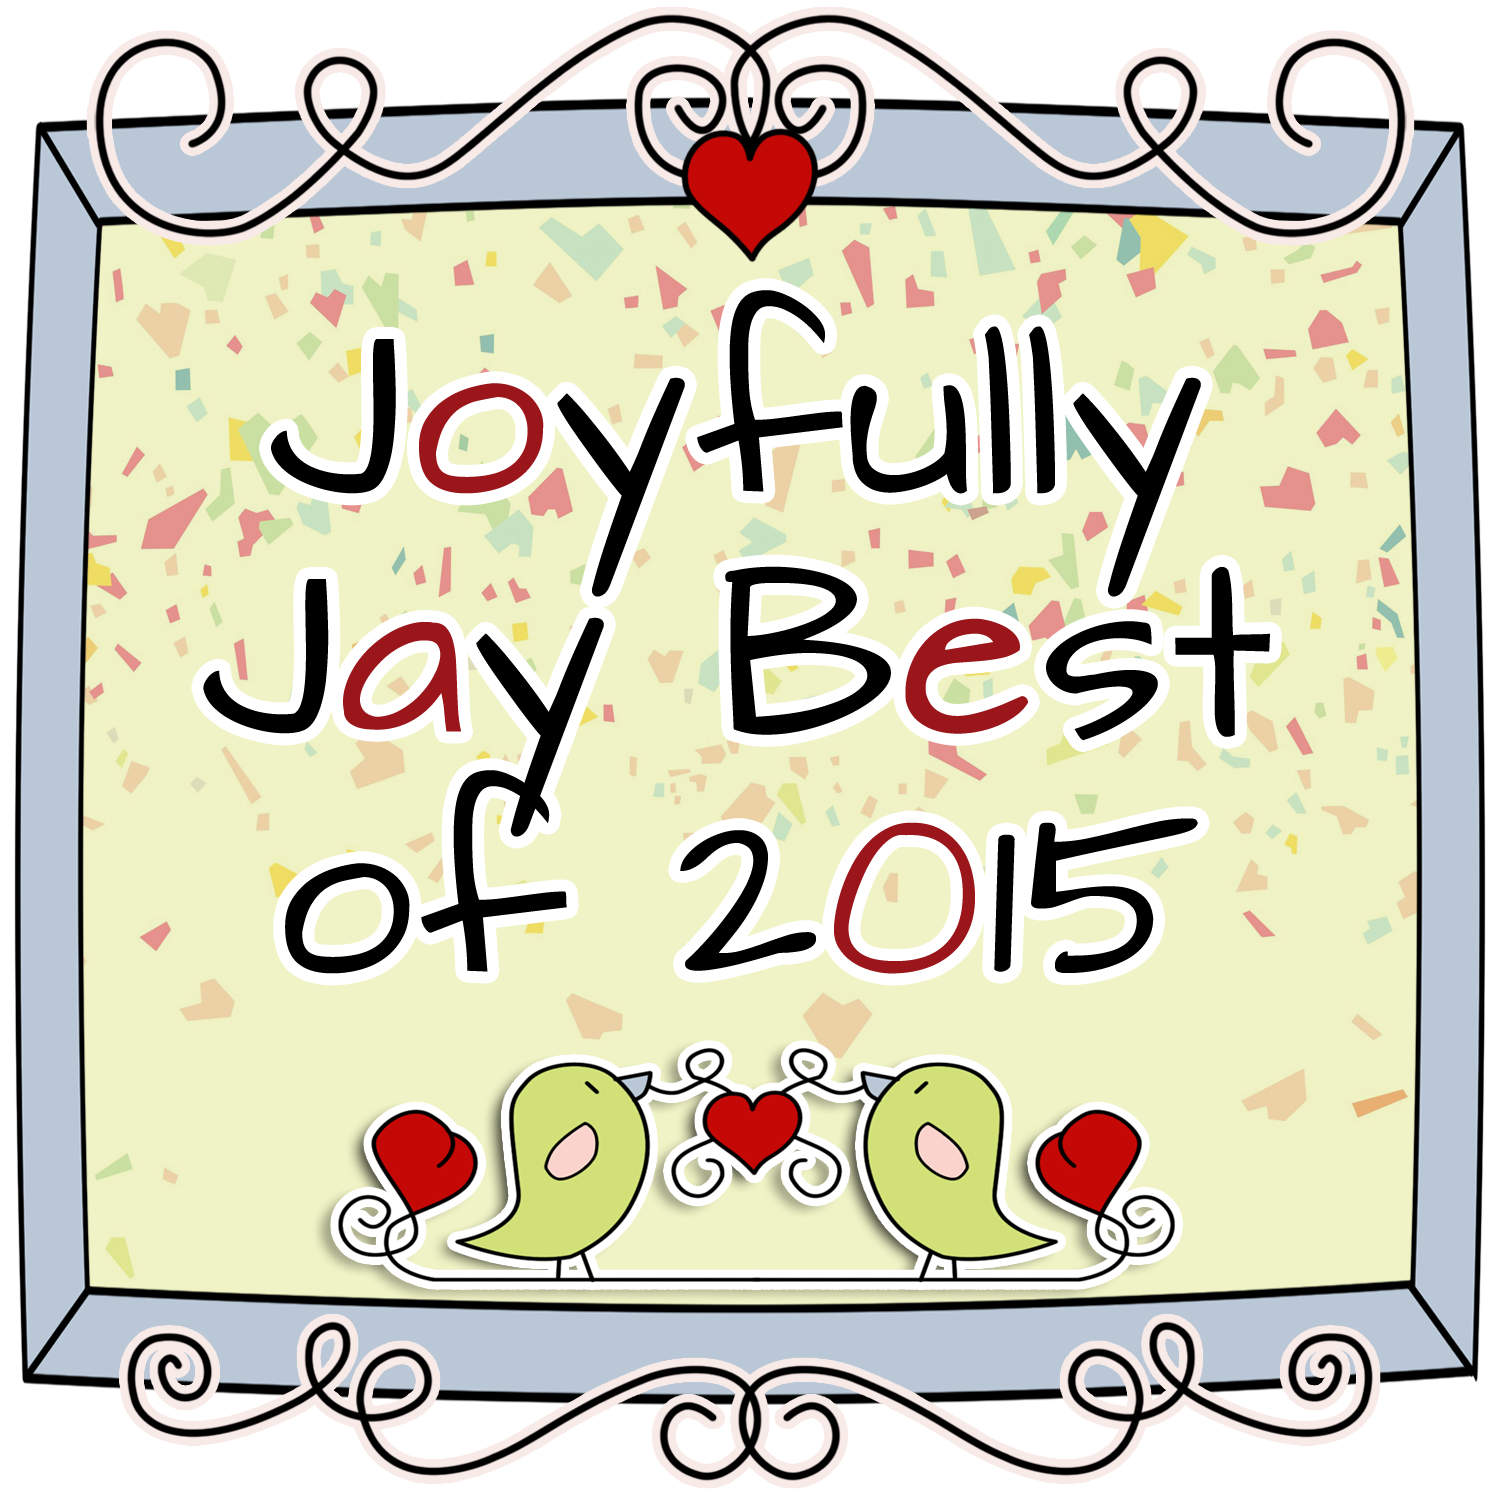 Jason's Best of 2015